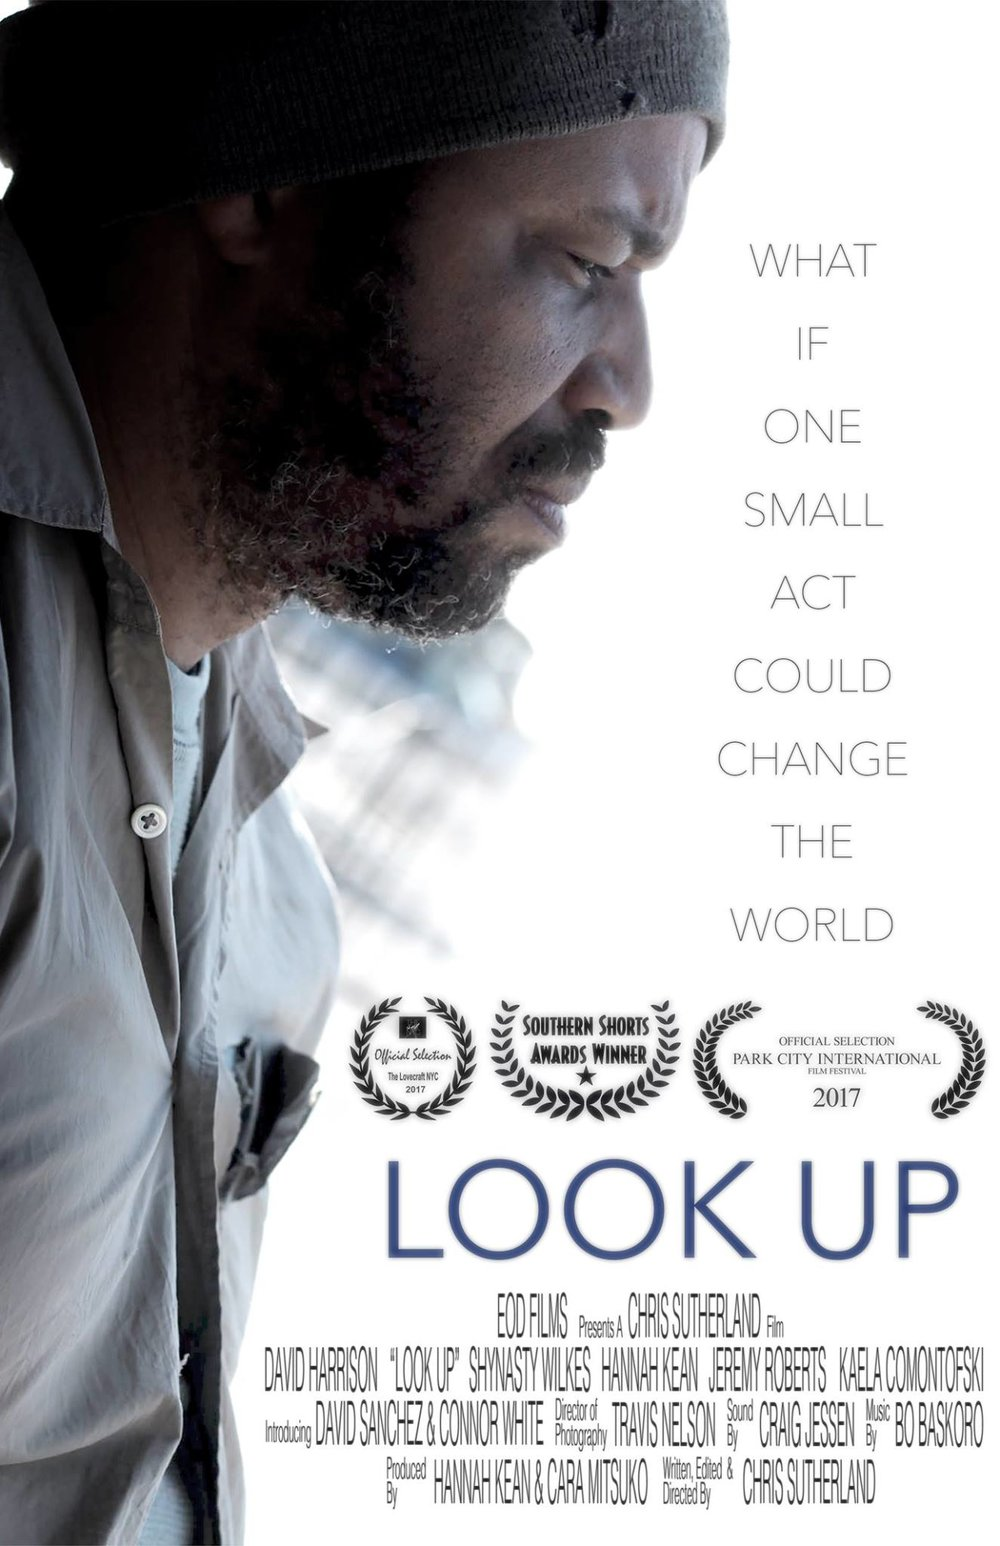 'Look Up' wins festival awards & lands online - Kaela plays Trish in this heartwarming story about a homeless man who is given a second chance. After making it's festival run and wining a few awards (yay!), 'Look Up' is now available to watch online.CLICK TO WATCH